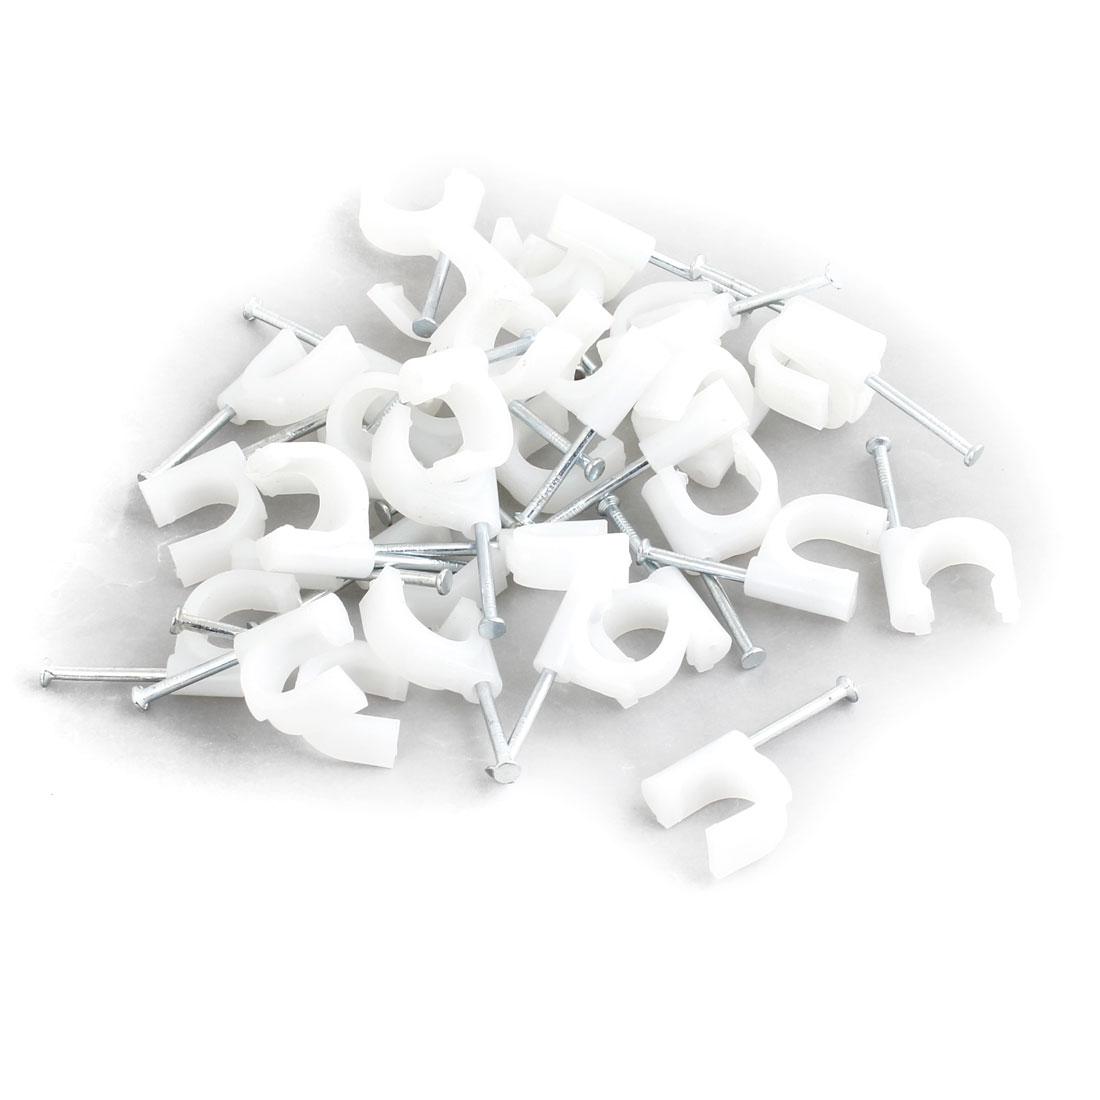 34 Pcs Plastic Wall Insert Inner Width 11mm Circle Cable Wire Nail Clips